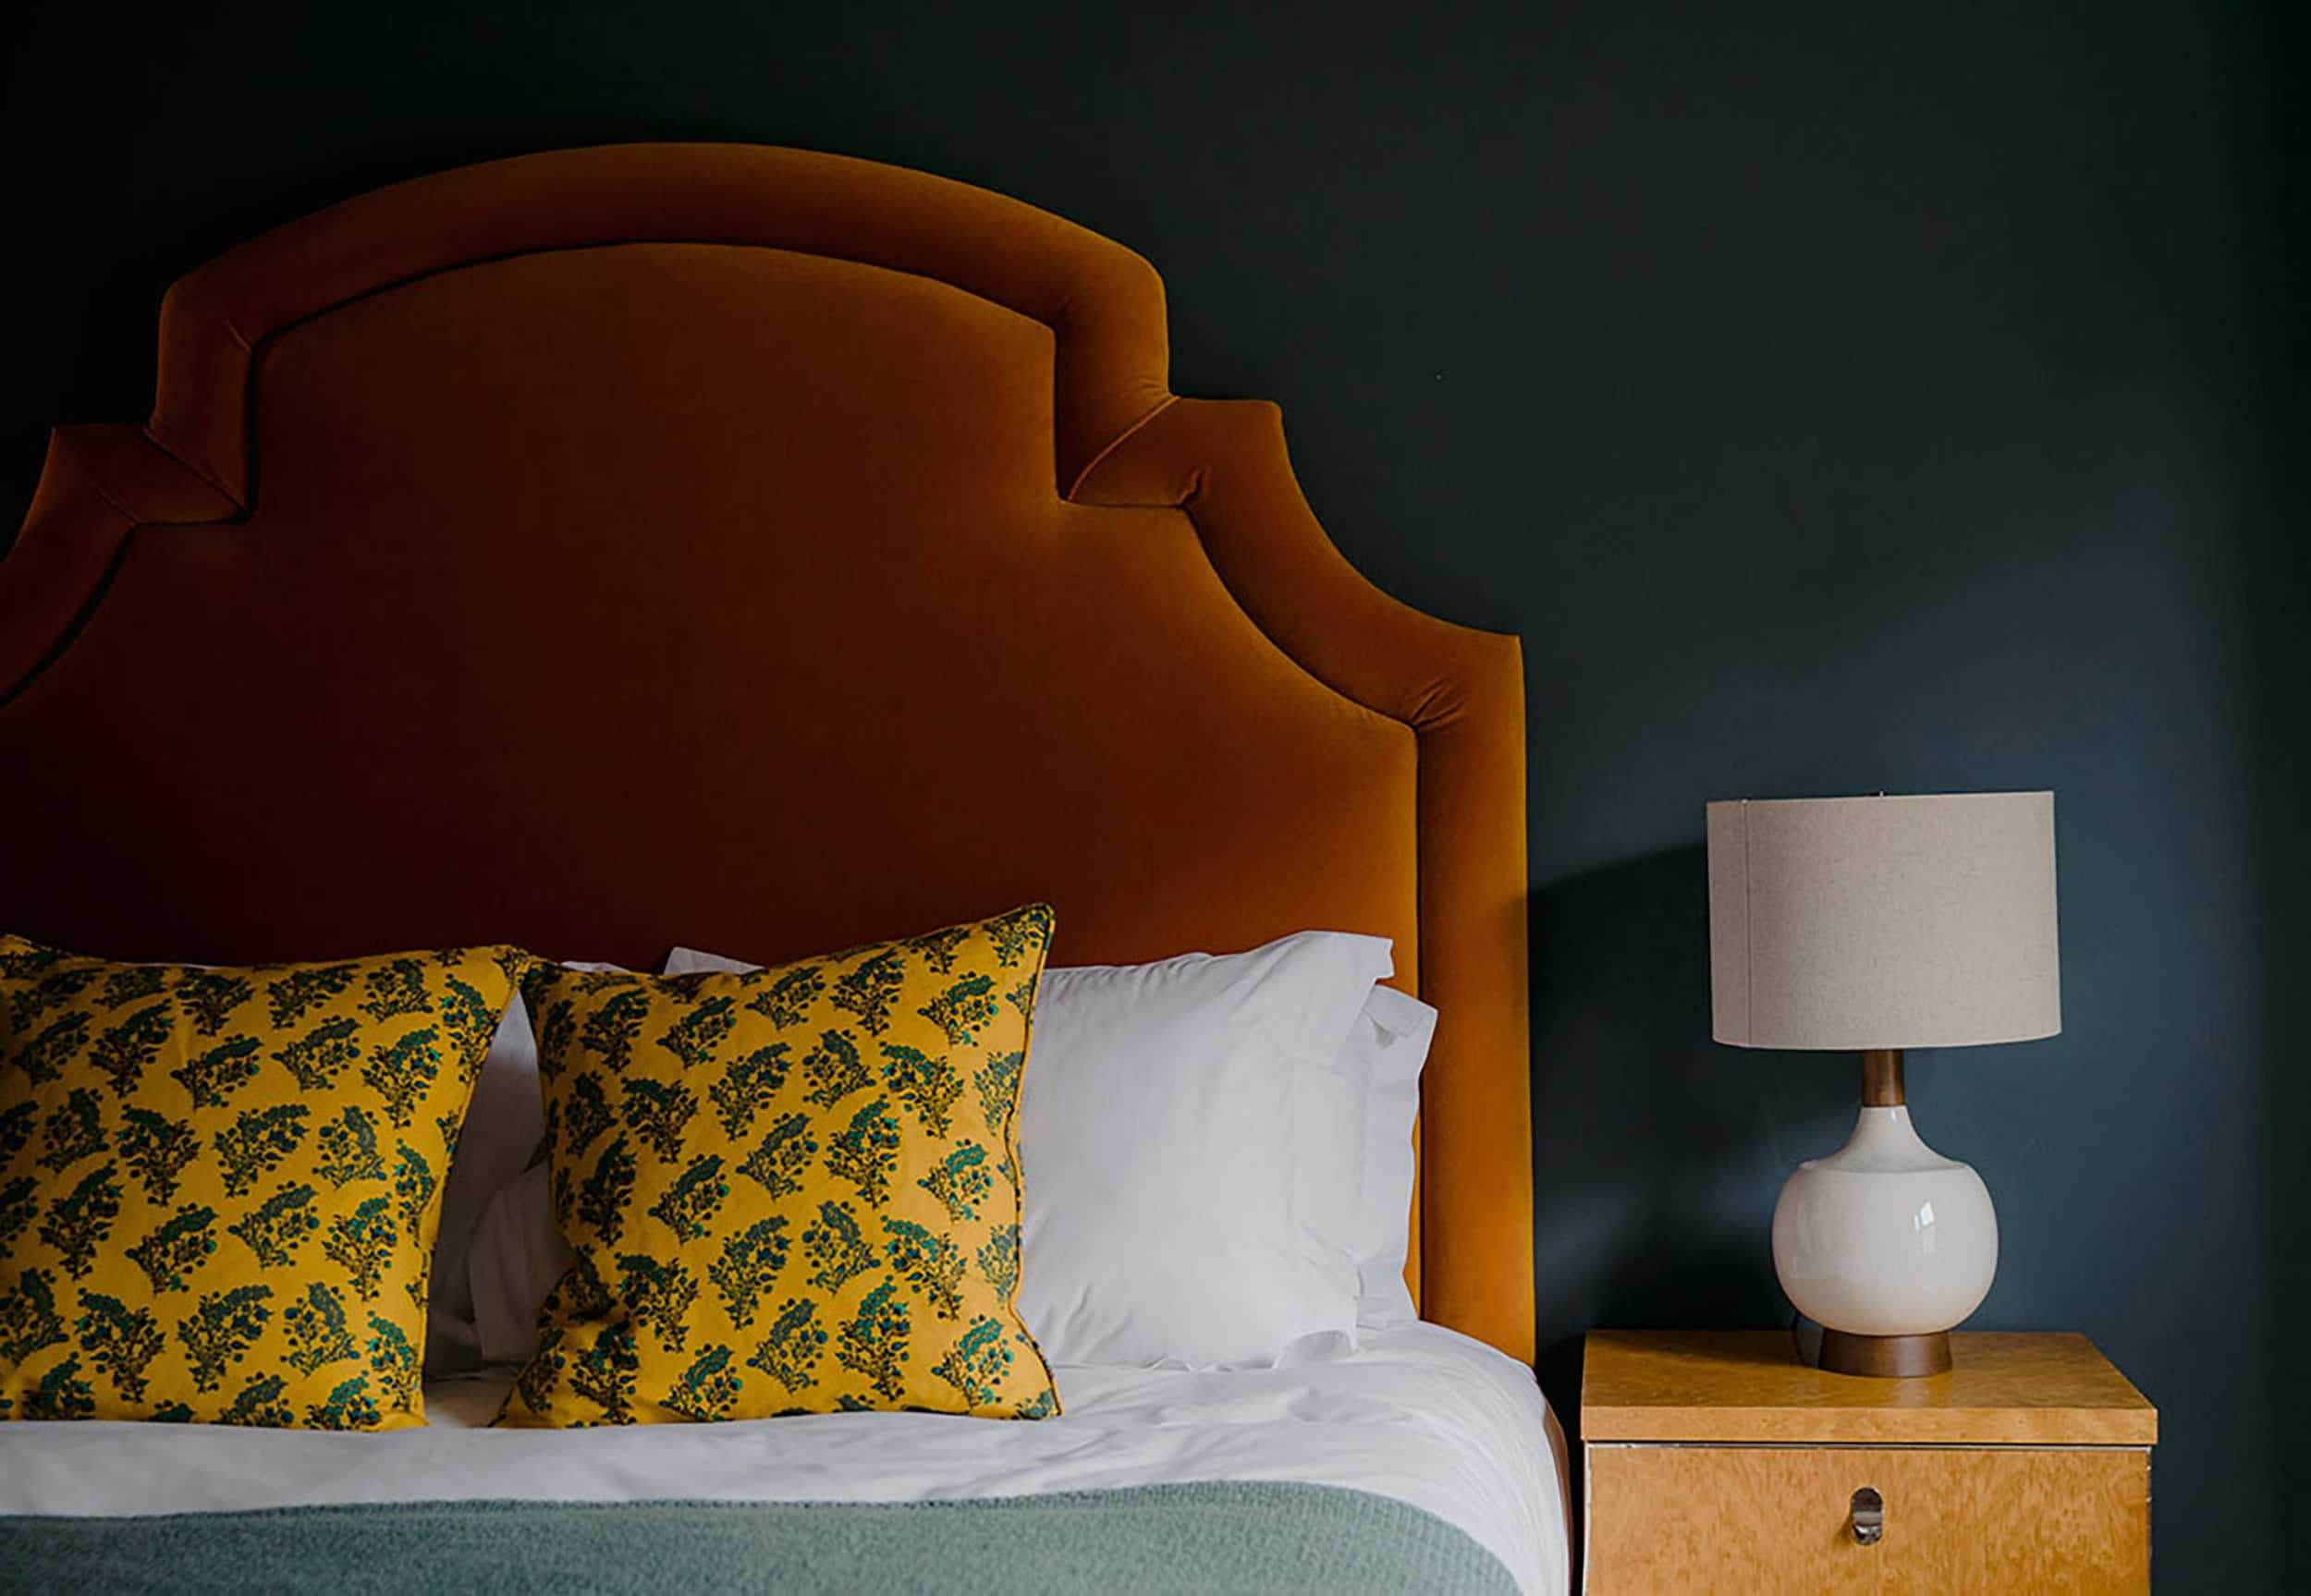 10 Unexpected Yet Chic Color Schemes To Try At Home